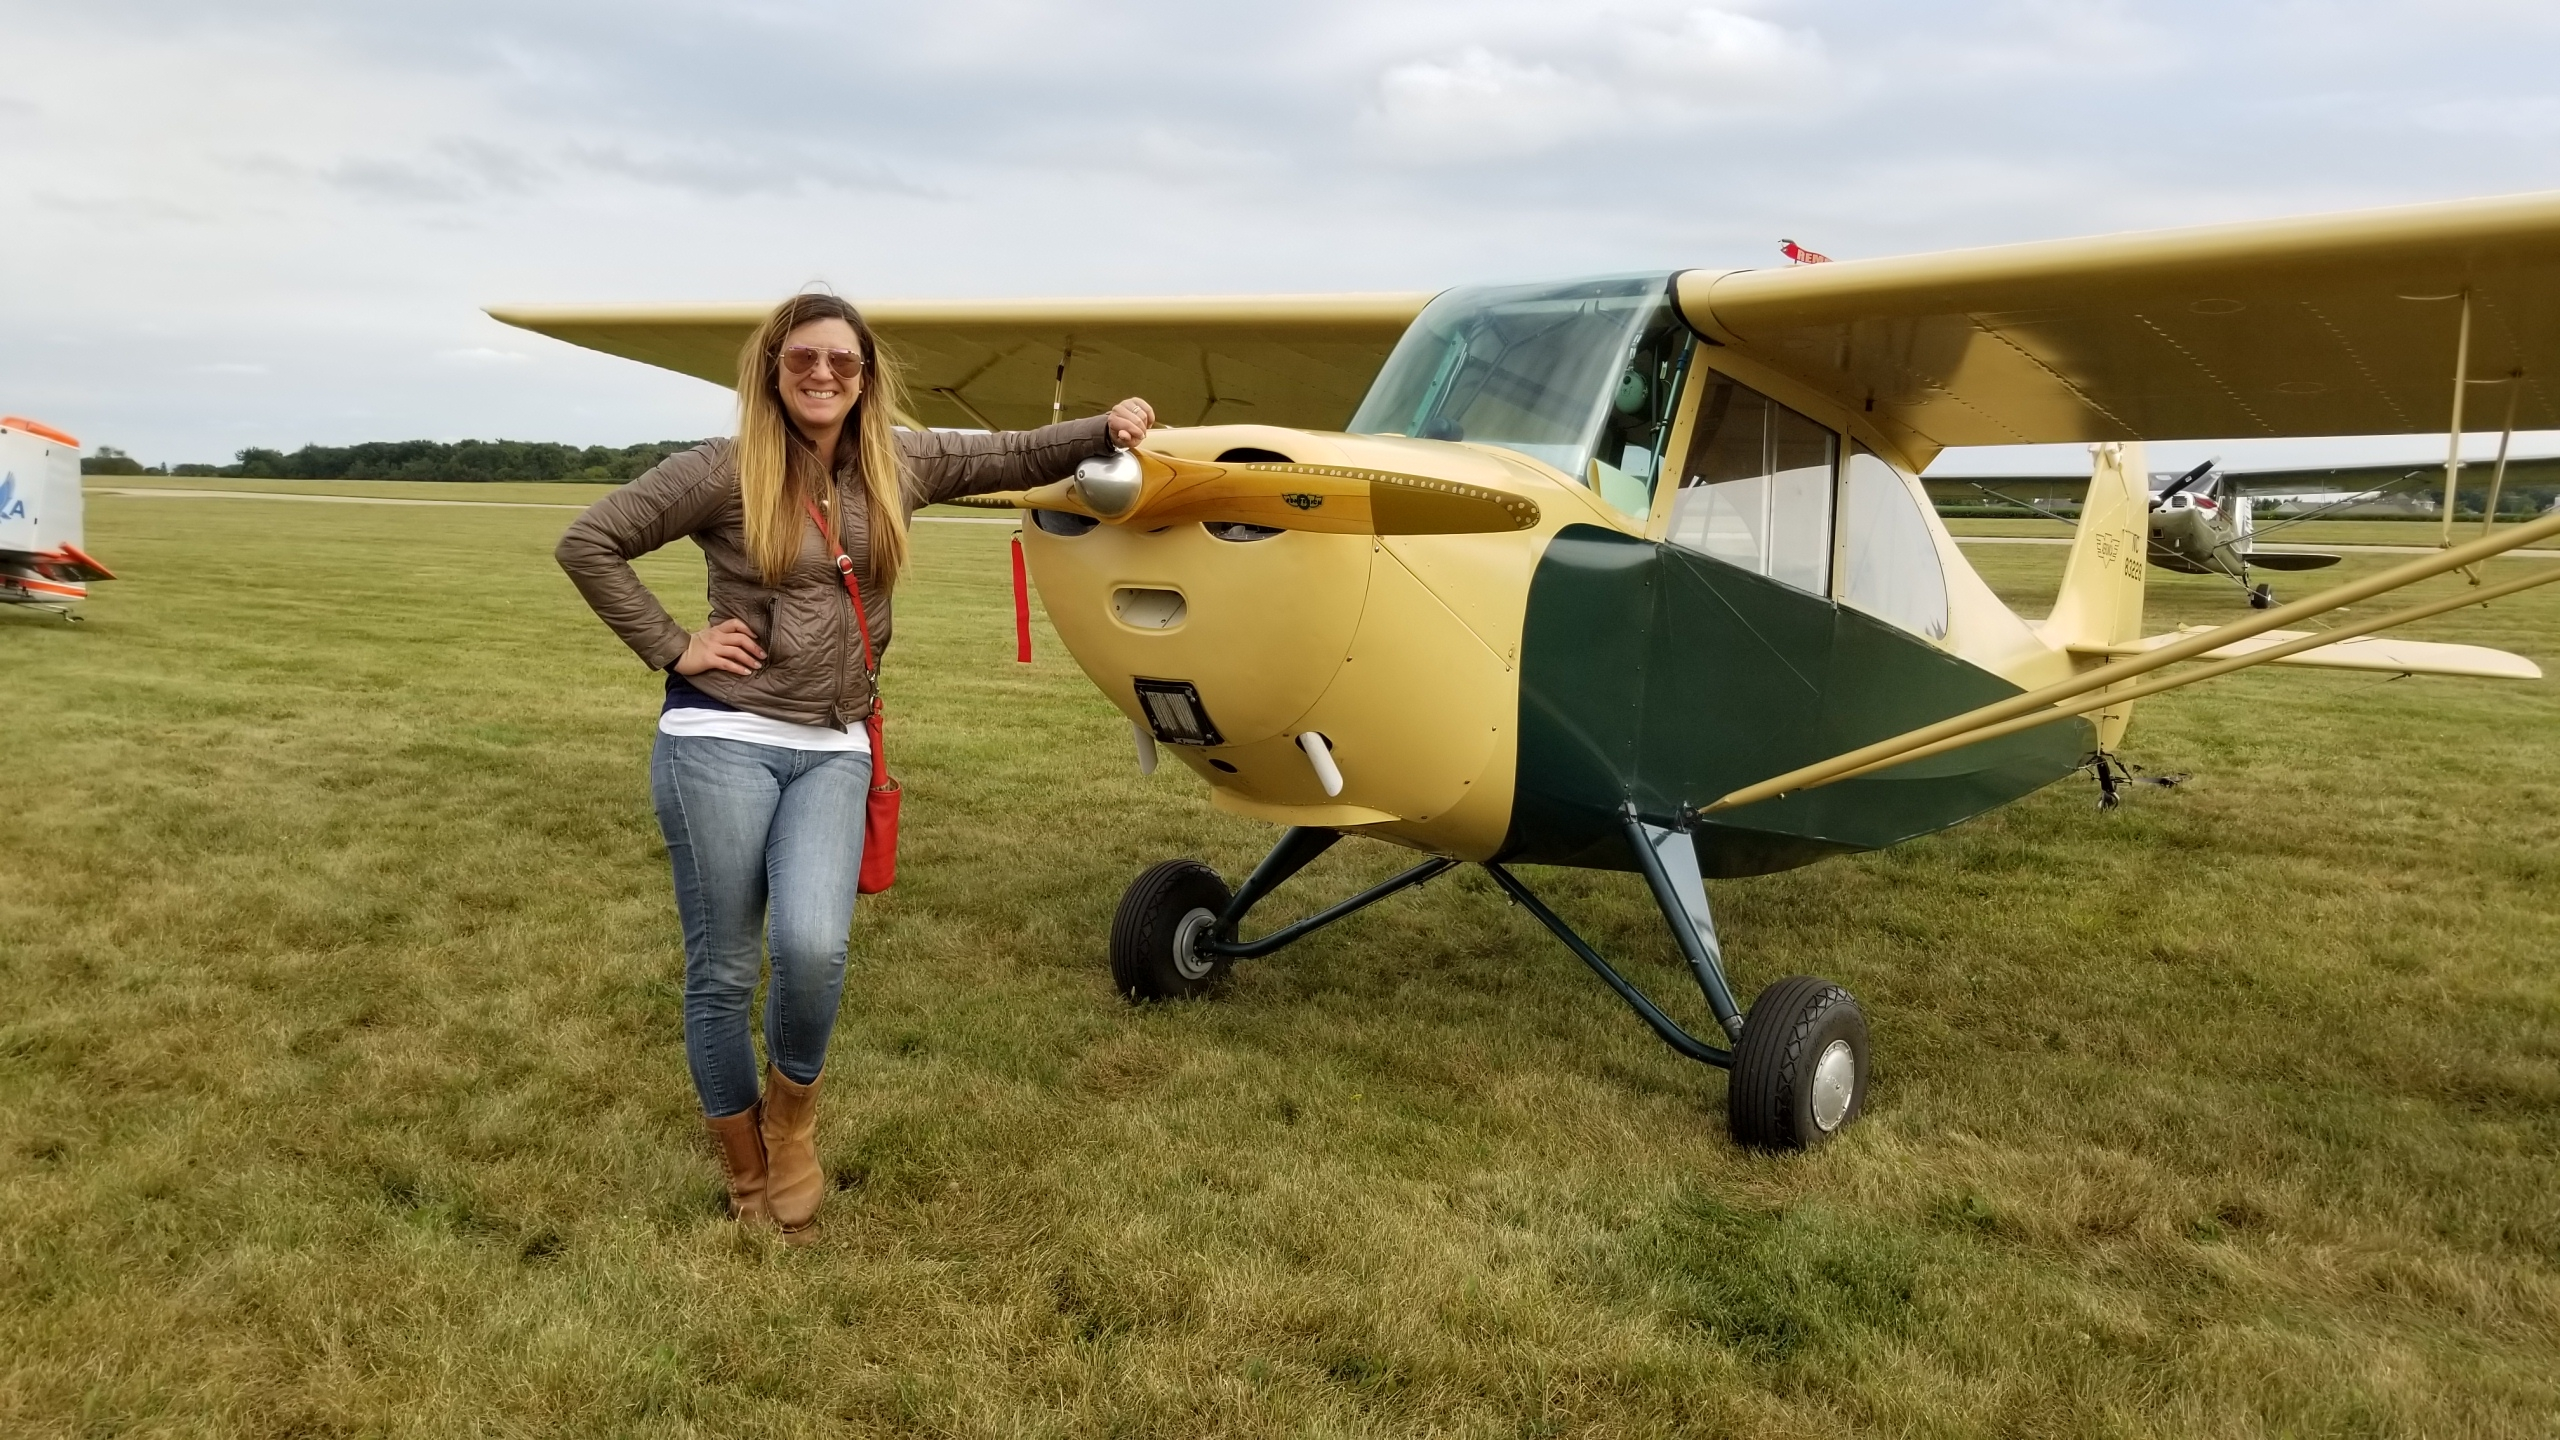 Friday at the LadiesLoveTaildraggers C77 Fly-in!